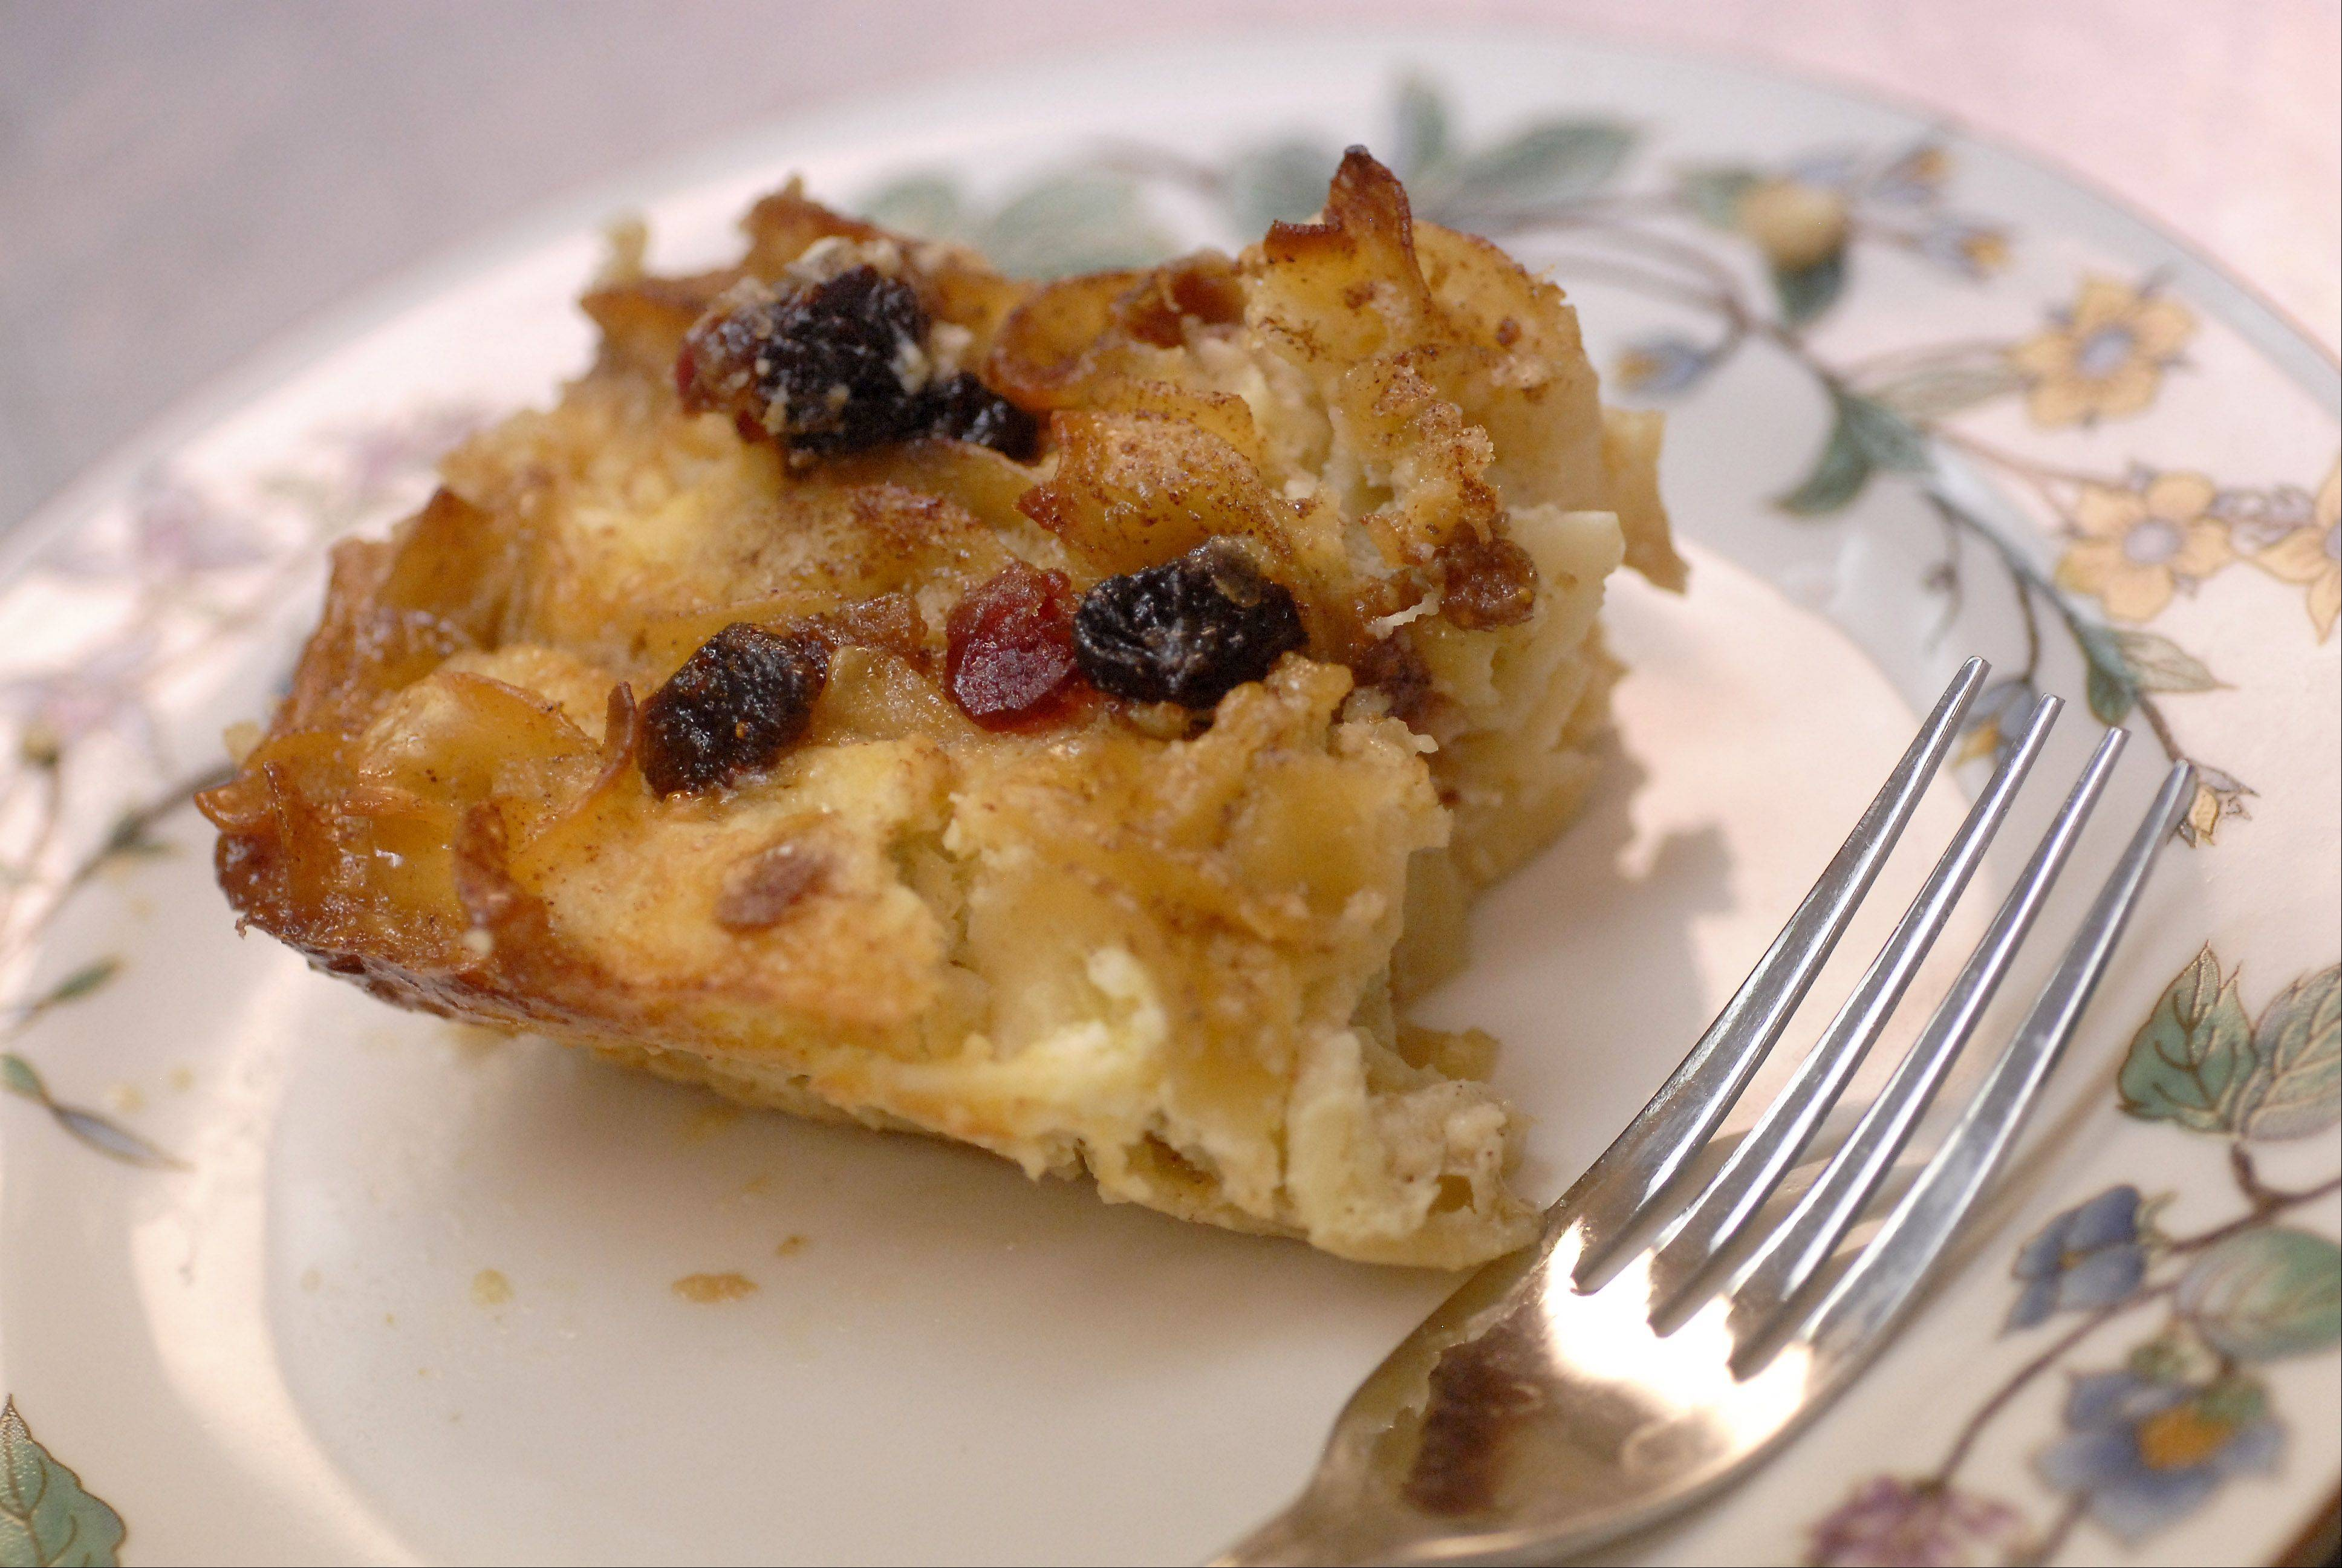 Kugel from Cook of the Week Roberta Fahey includes dried fruits for extra flavor.